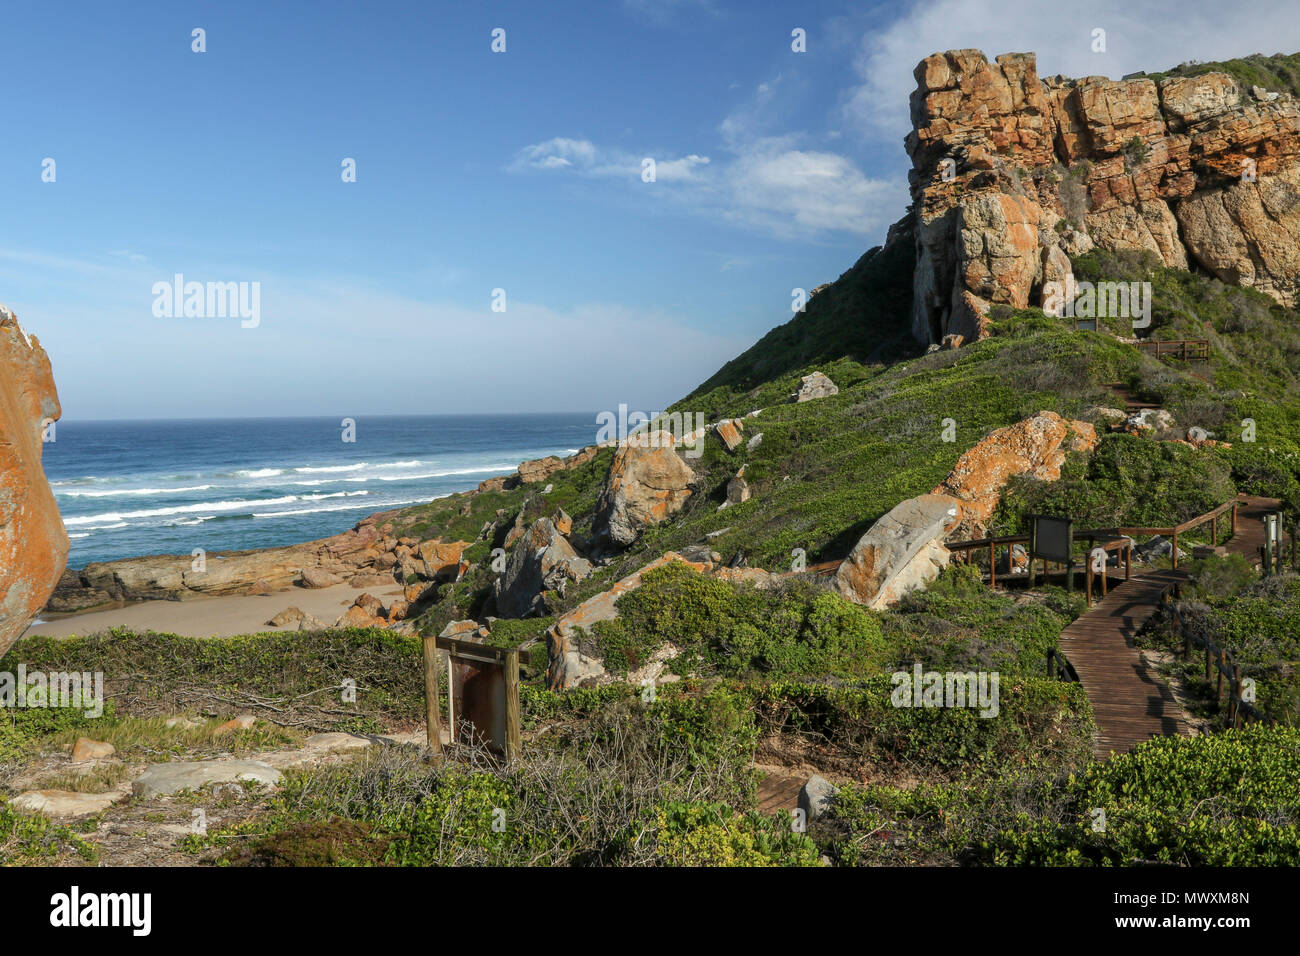 Rock outcrop ans seascape in the Robberg nature reserve, garden route, south africa Stock Photo